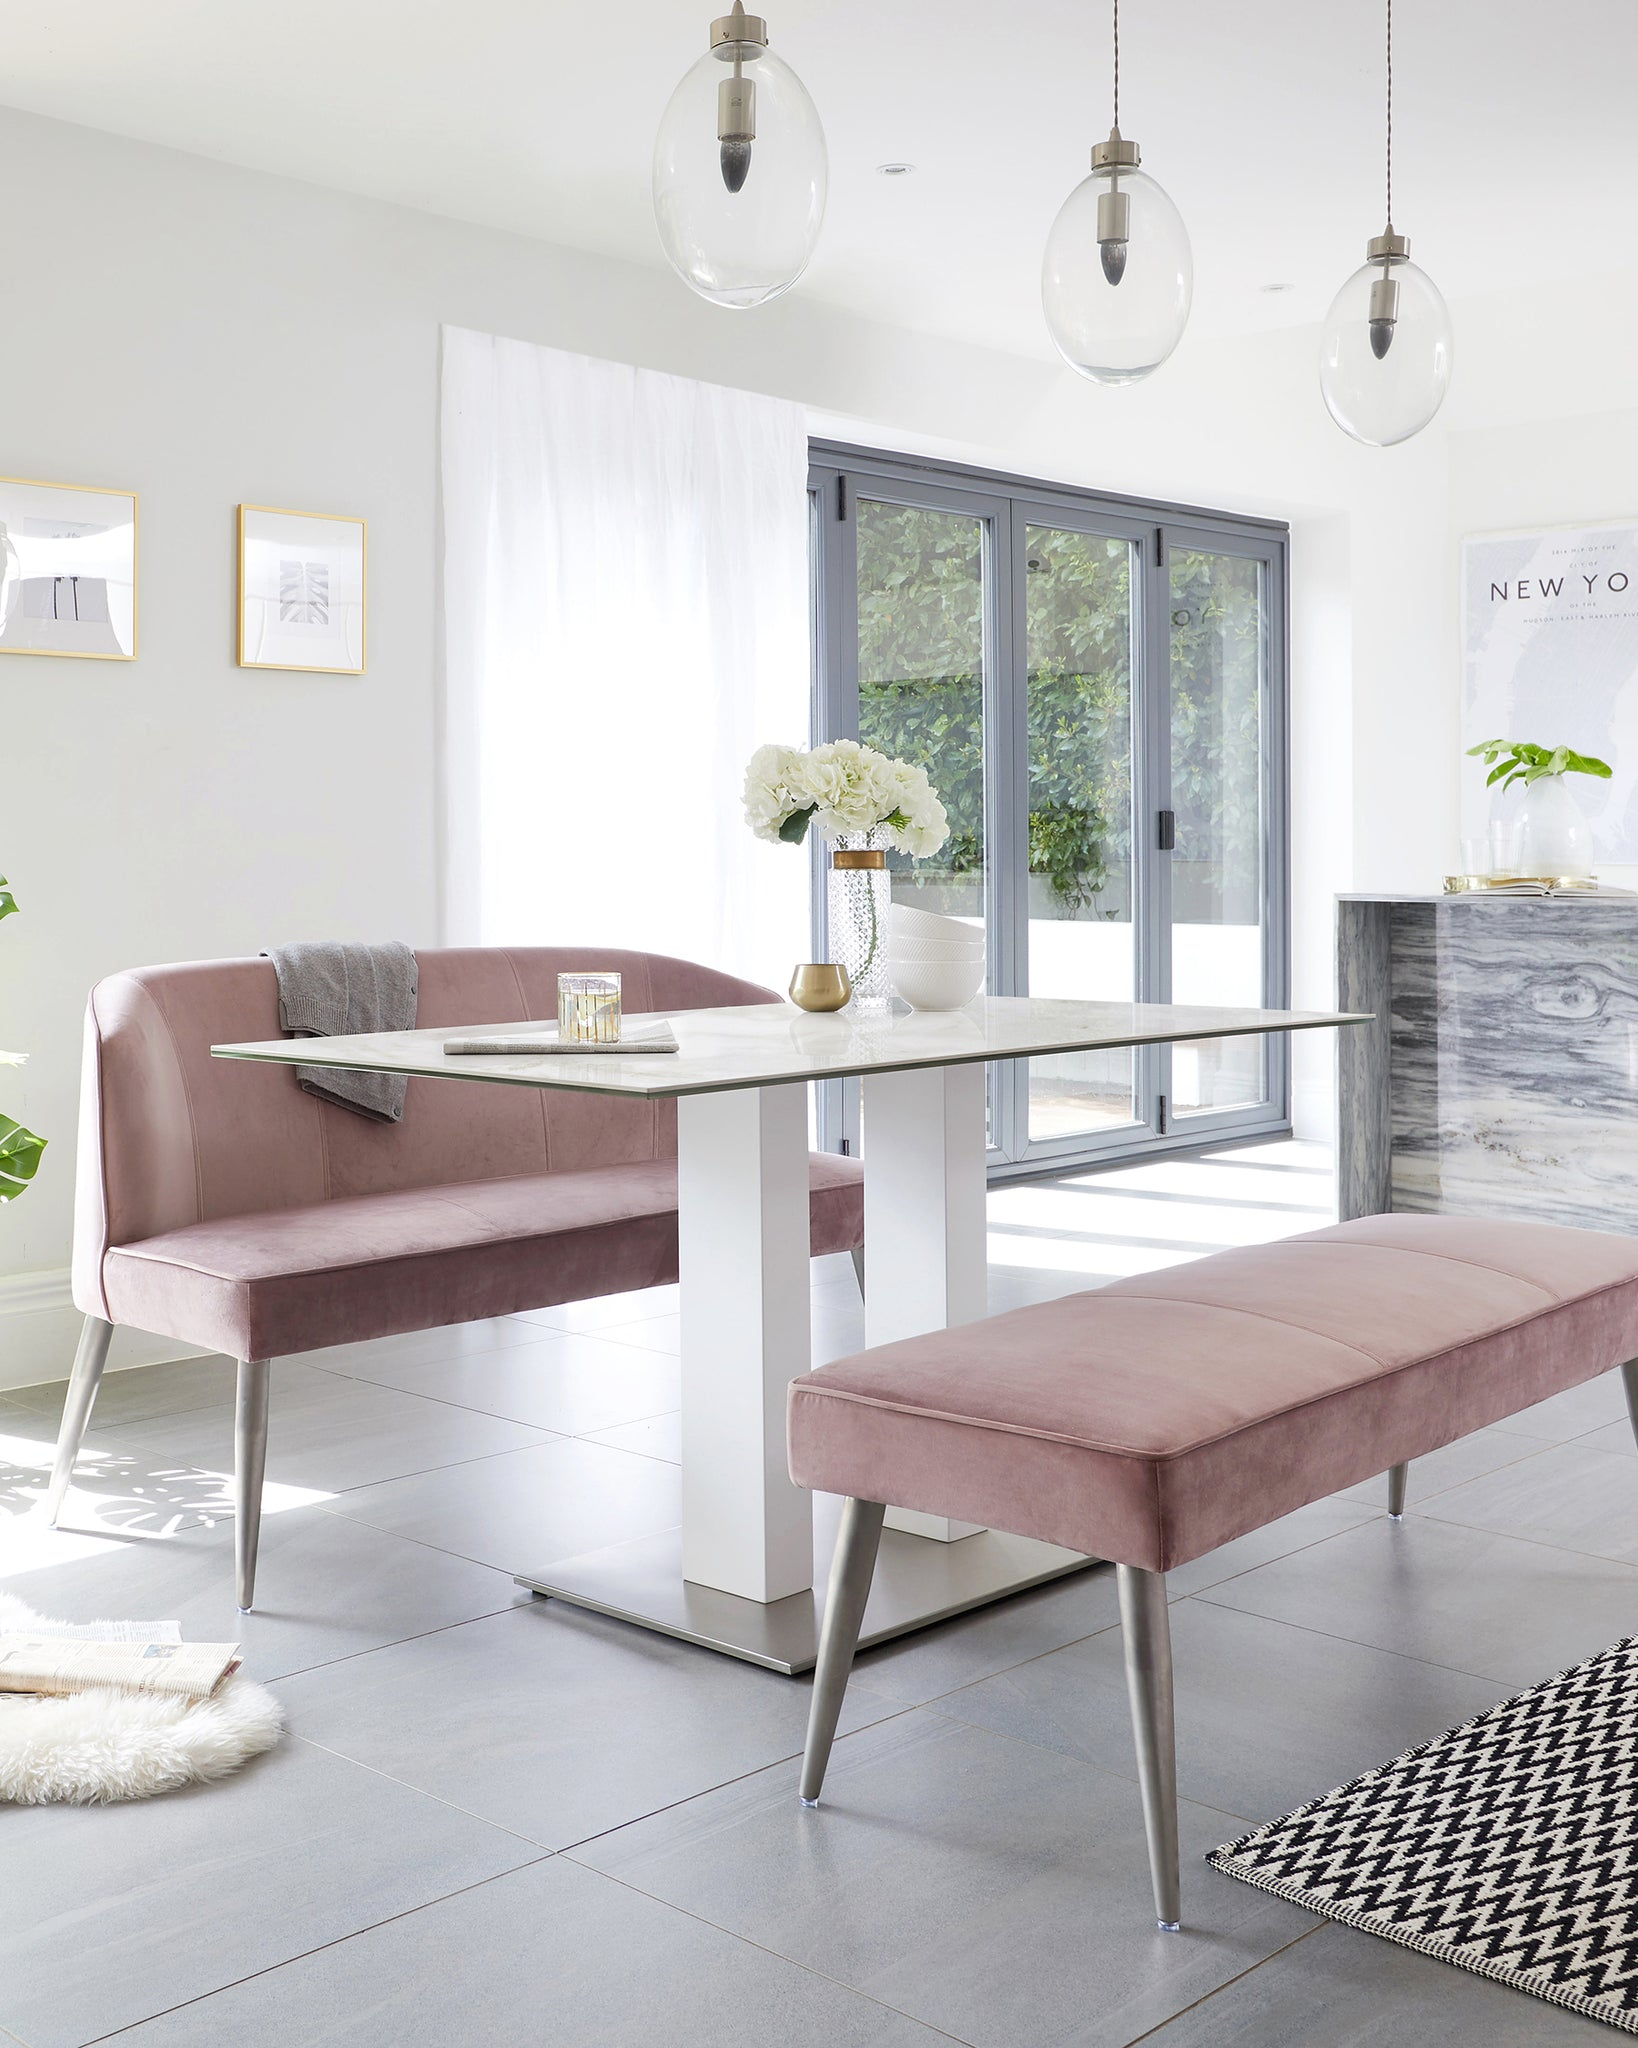 Mia Ceramic Marble Dining Table And Mellow Blush Pink Bench Set